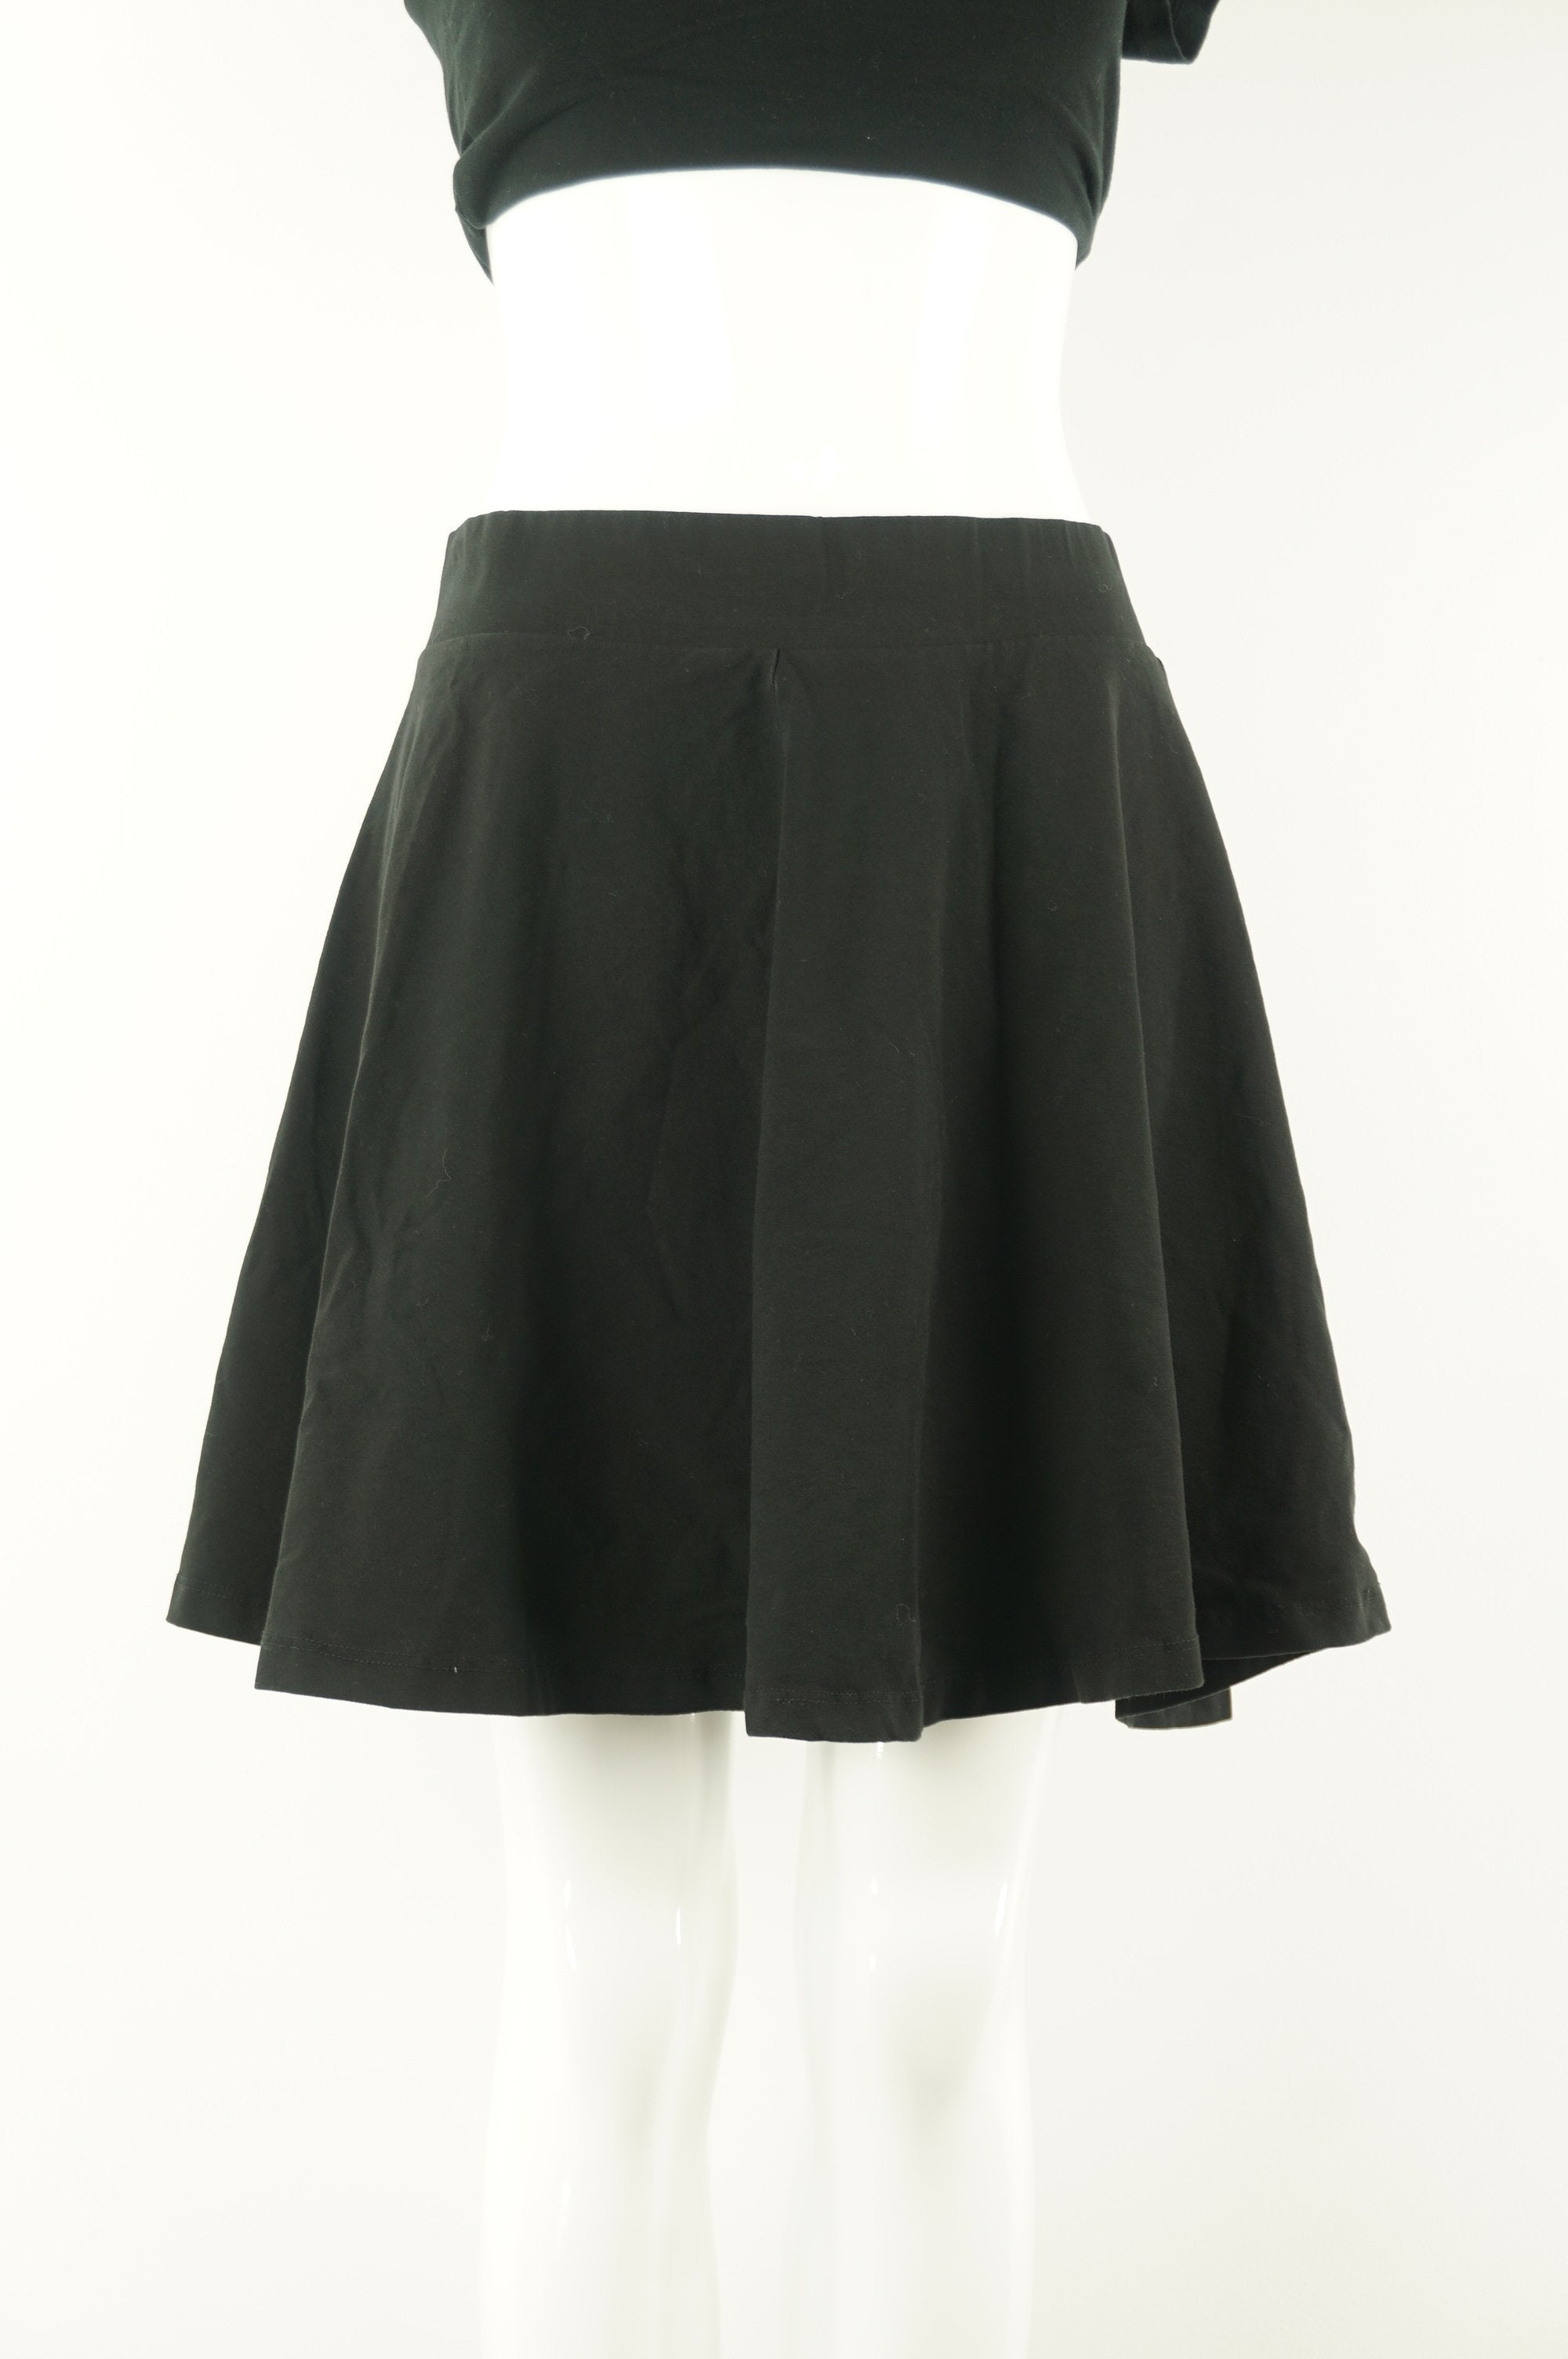 H&M Stretchy Mini Skater Skirt, Comfortable mini skirt with elastic waistband. Falls just above the knees, Black, 93% Cotton, 7% Elastane, women's Dresses & Skirts, women's Black Dresses & Skirts, H&M women's Dresses & Skirts, women's mini skirt, women's balck short skirt